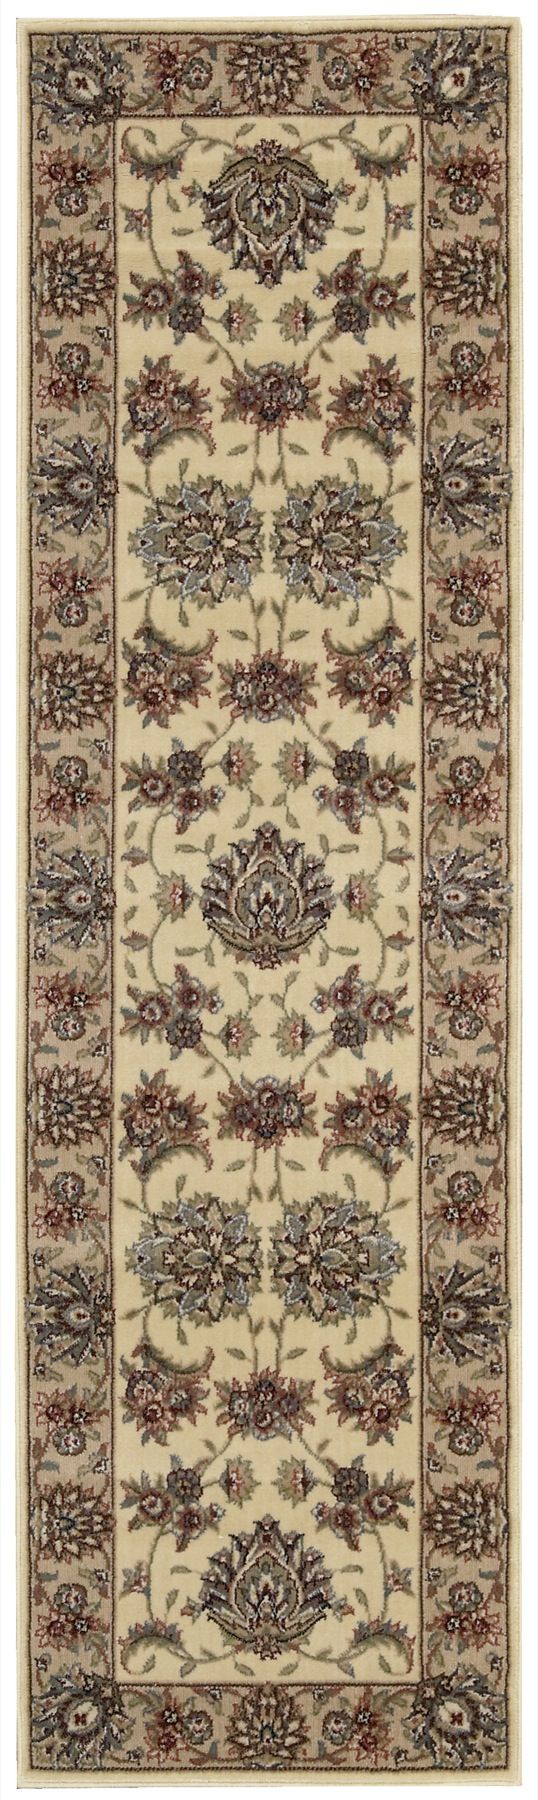 nourison cambridge traditional area rug collection